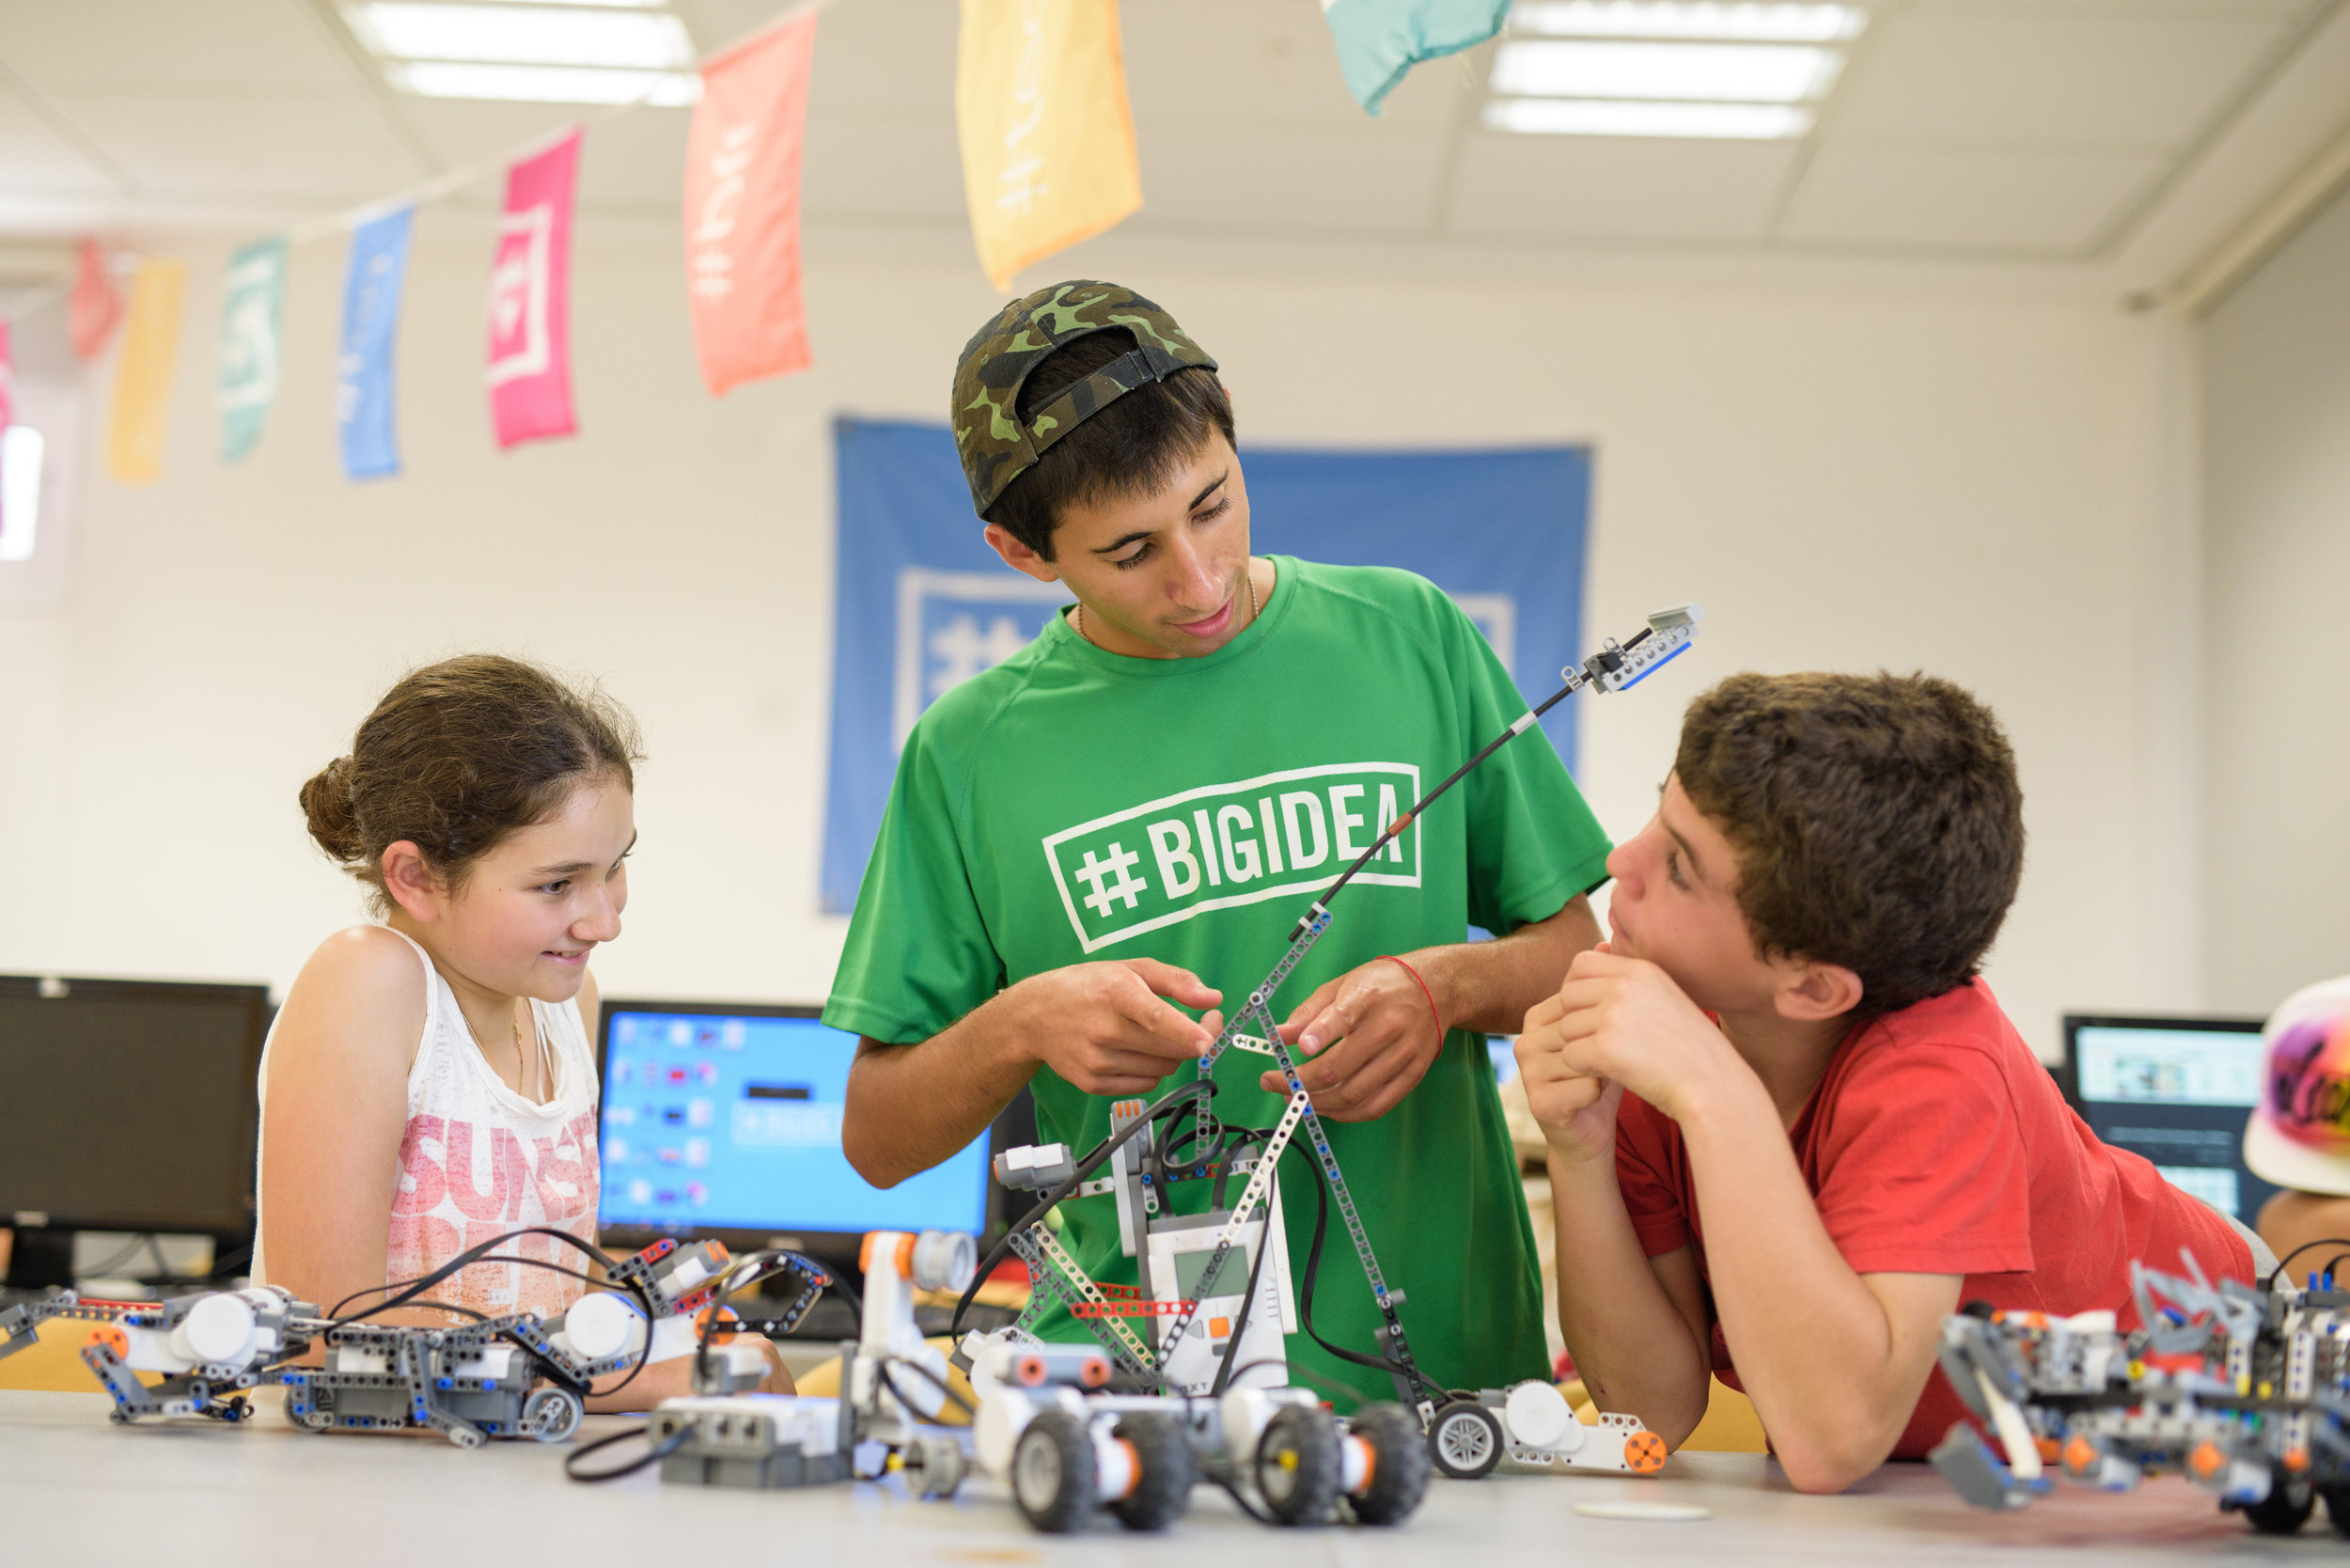 A high-tech activity at a Big Idea camp in Israel. Credit: Big Idea.